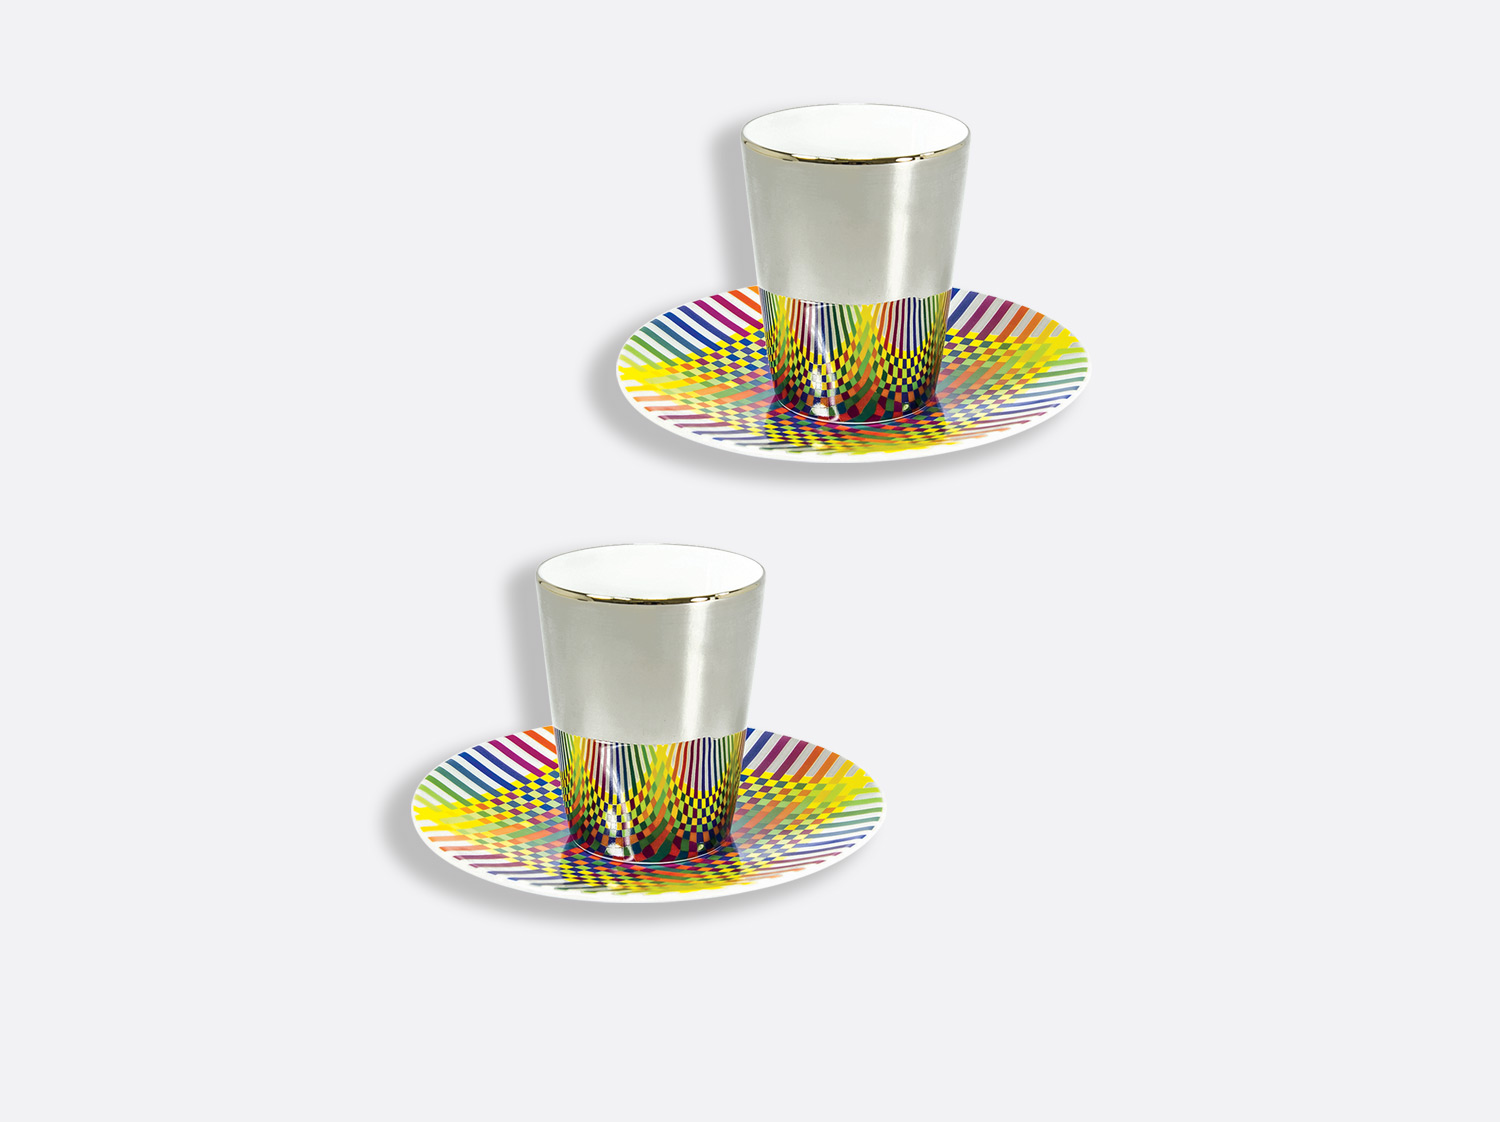 China Set of 2 platinum espresso cups and saucers 2.4 oz of the collection Surface colorée B29 | Bernardaud